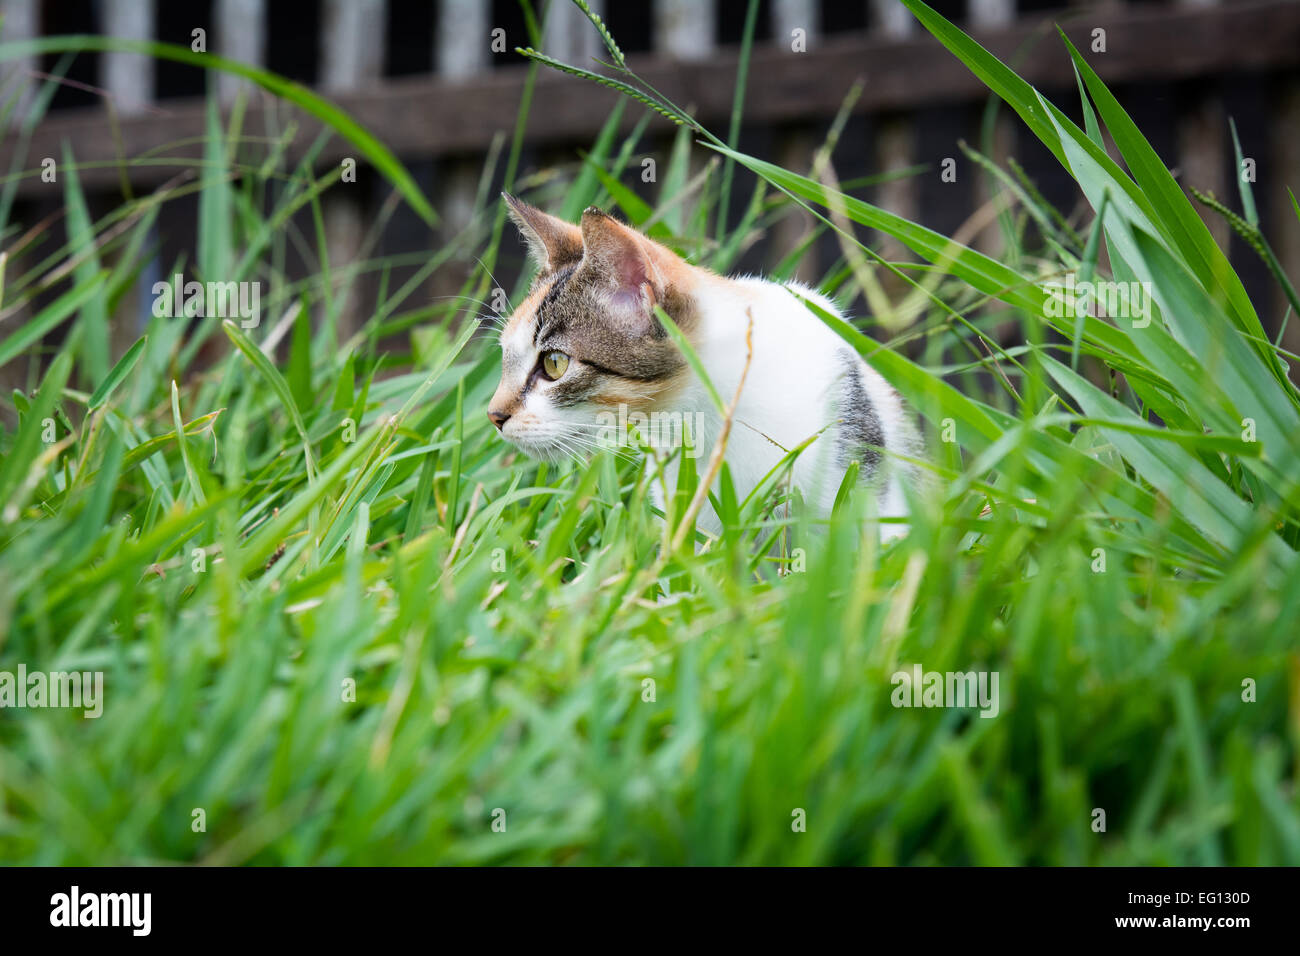 Cat Stalking in Long Grass - Stock Image